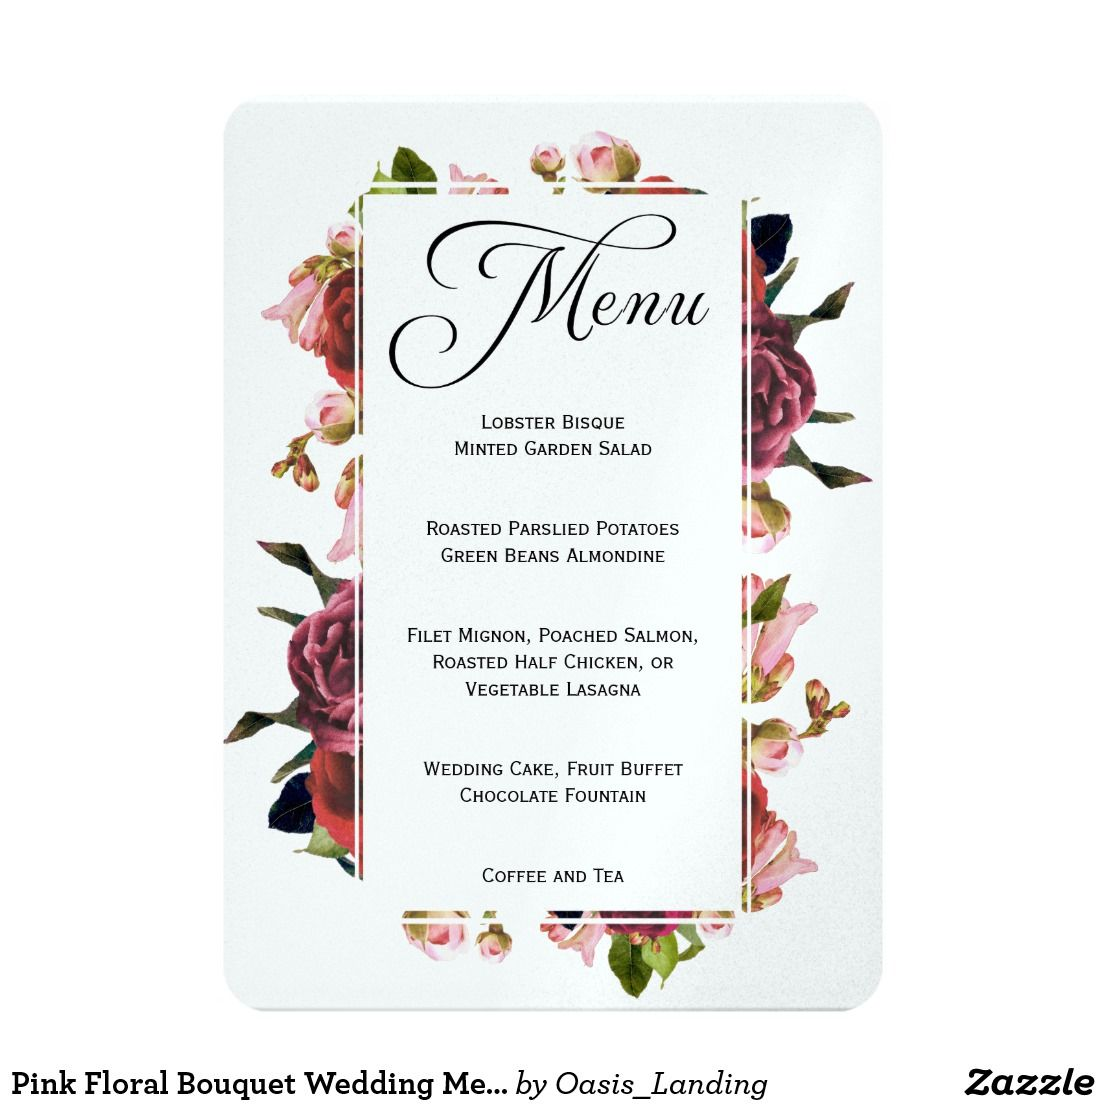 Pink floral bouquet wedding menu card wedding menu cards menu pink floral bouquet wedding menu card mightylinksfo Choice Image